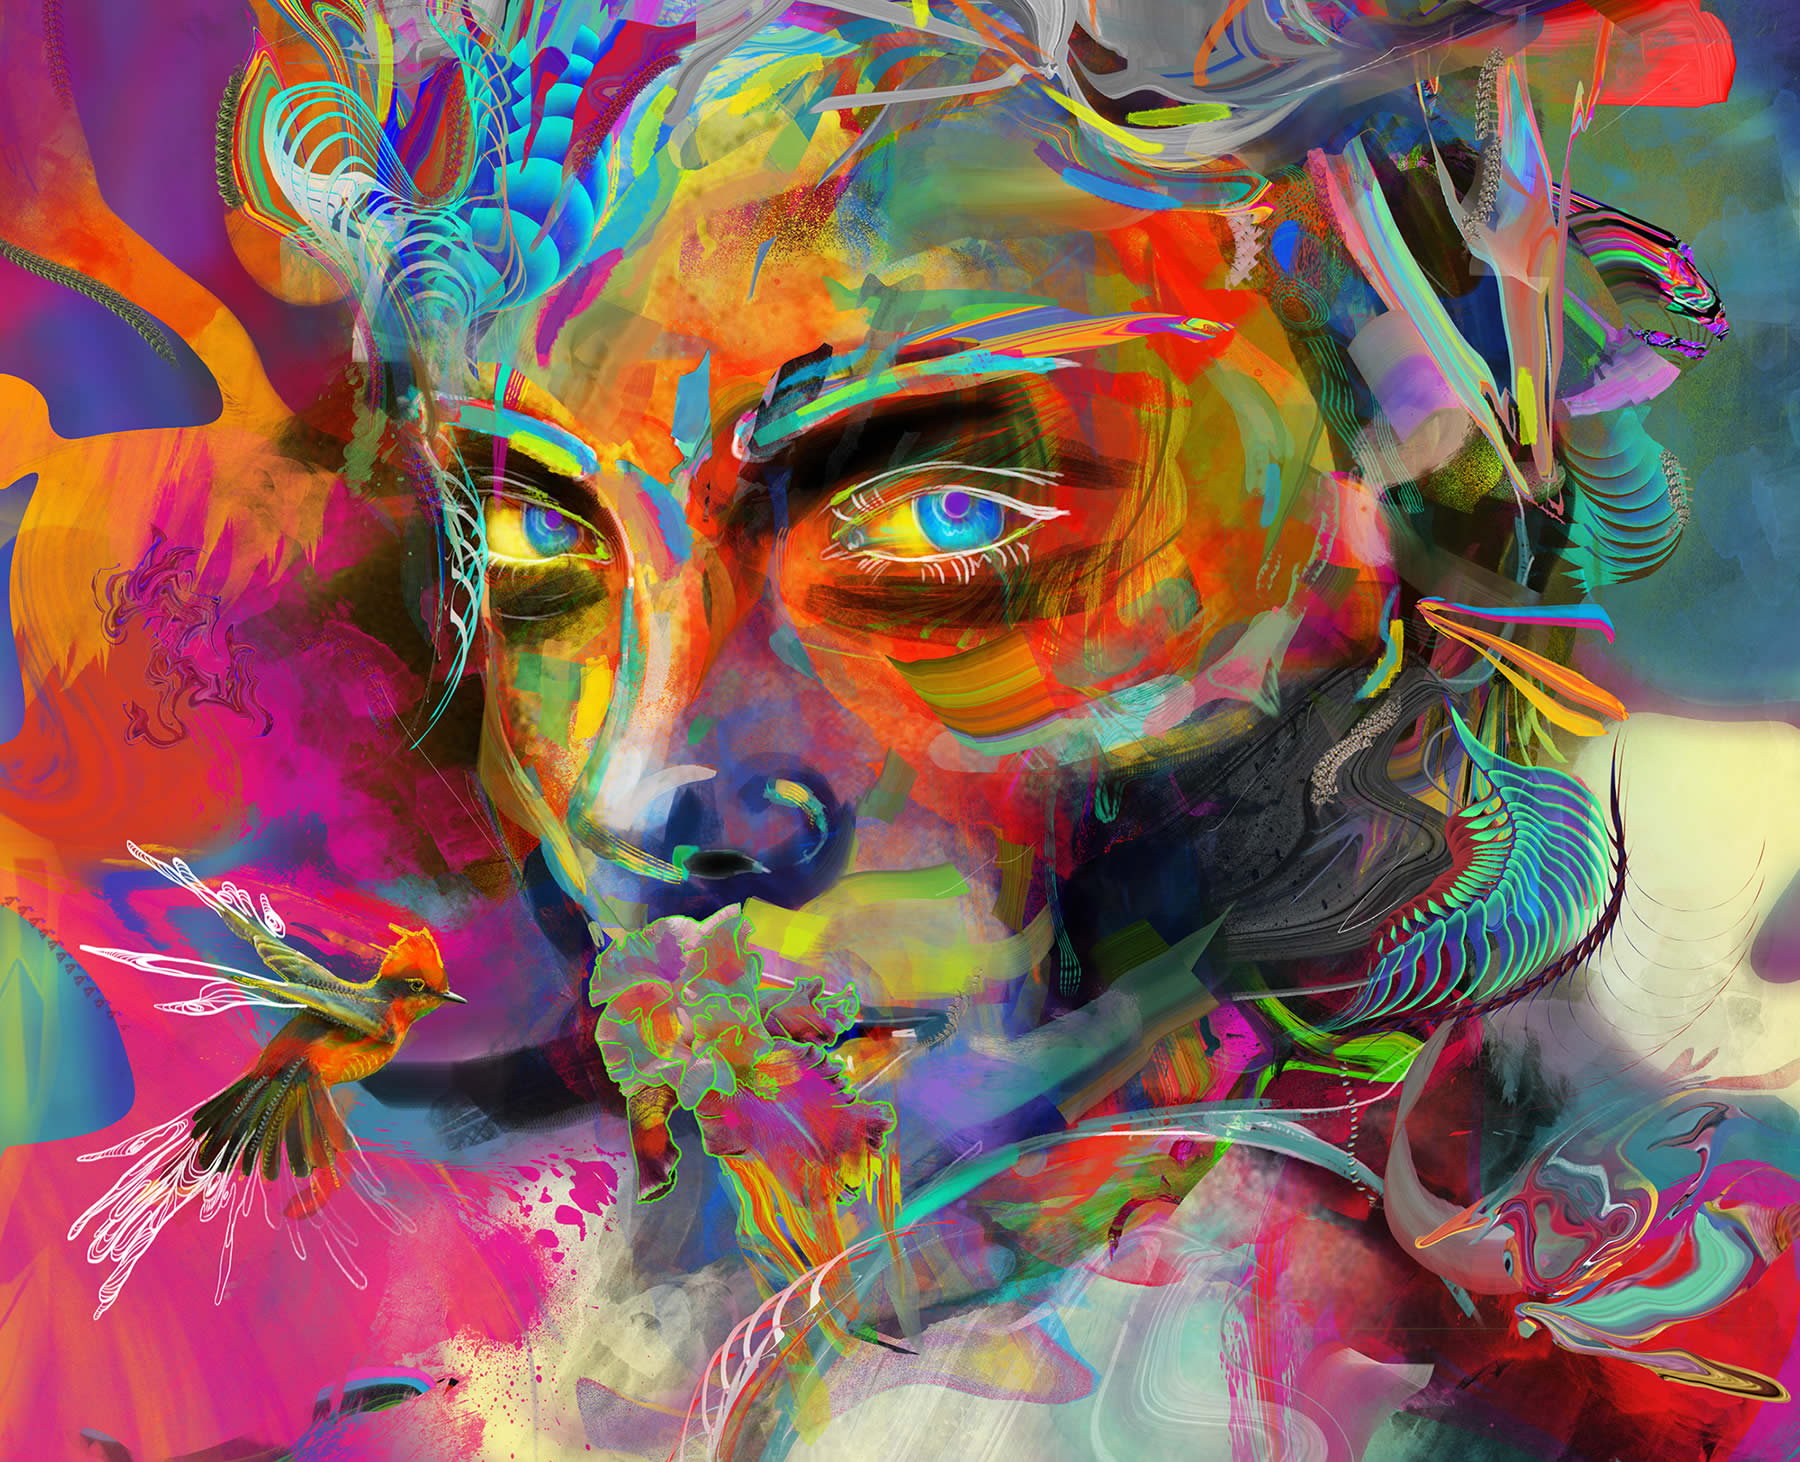 Colorful Digital Art: An Interview with Archan Nair